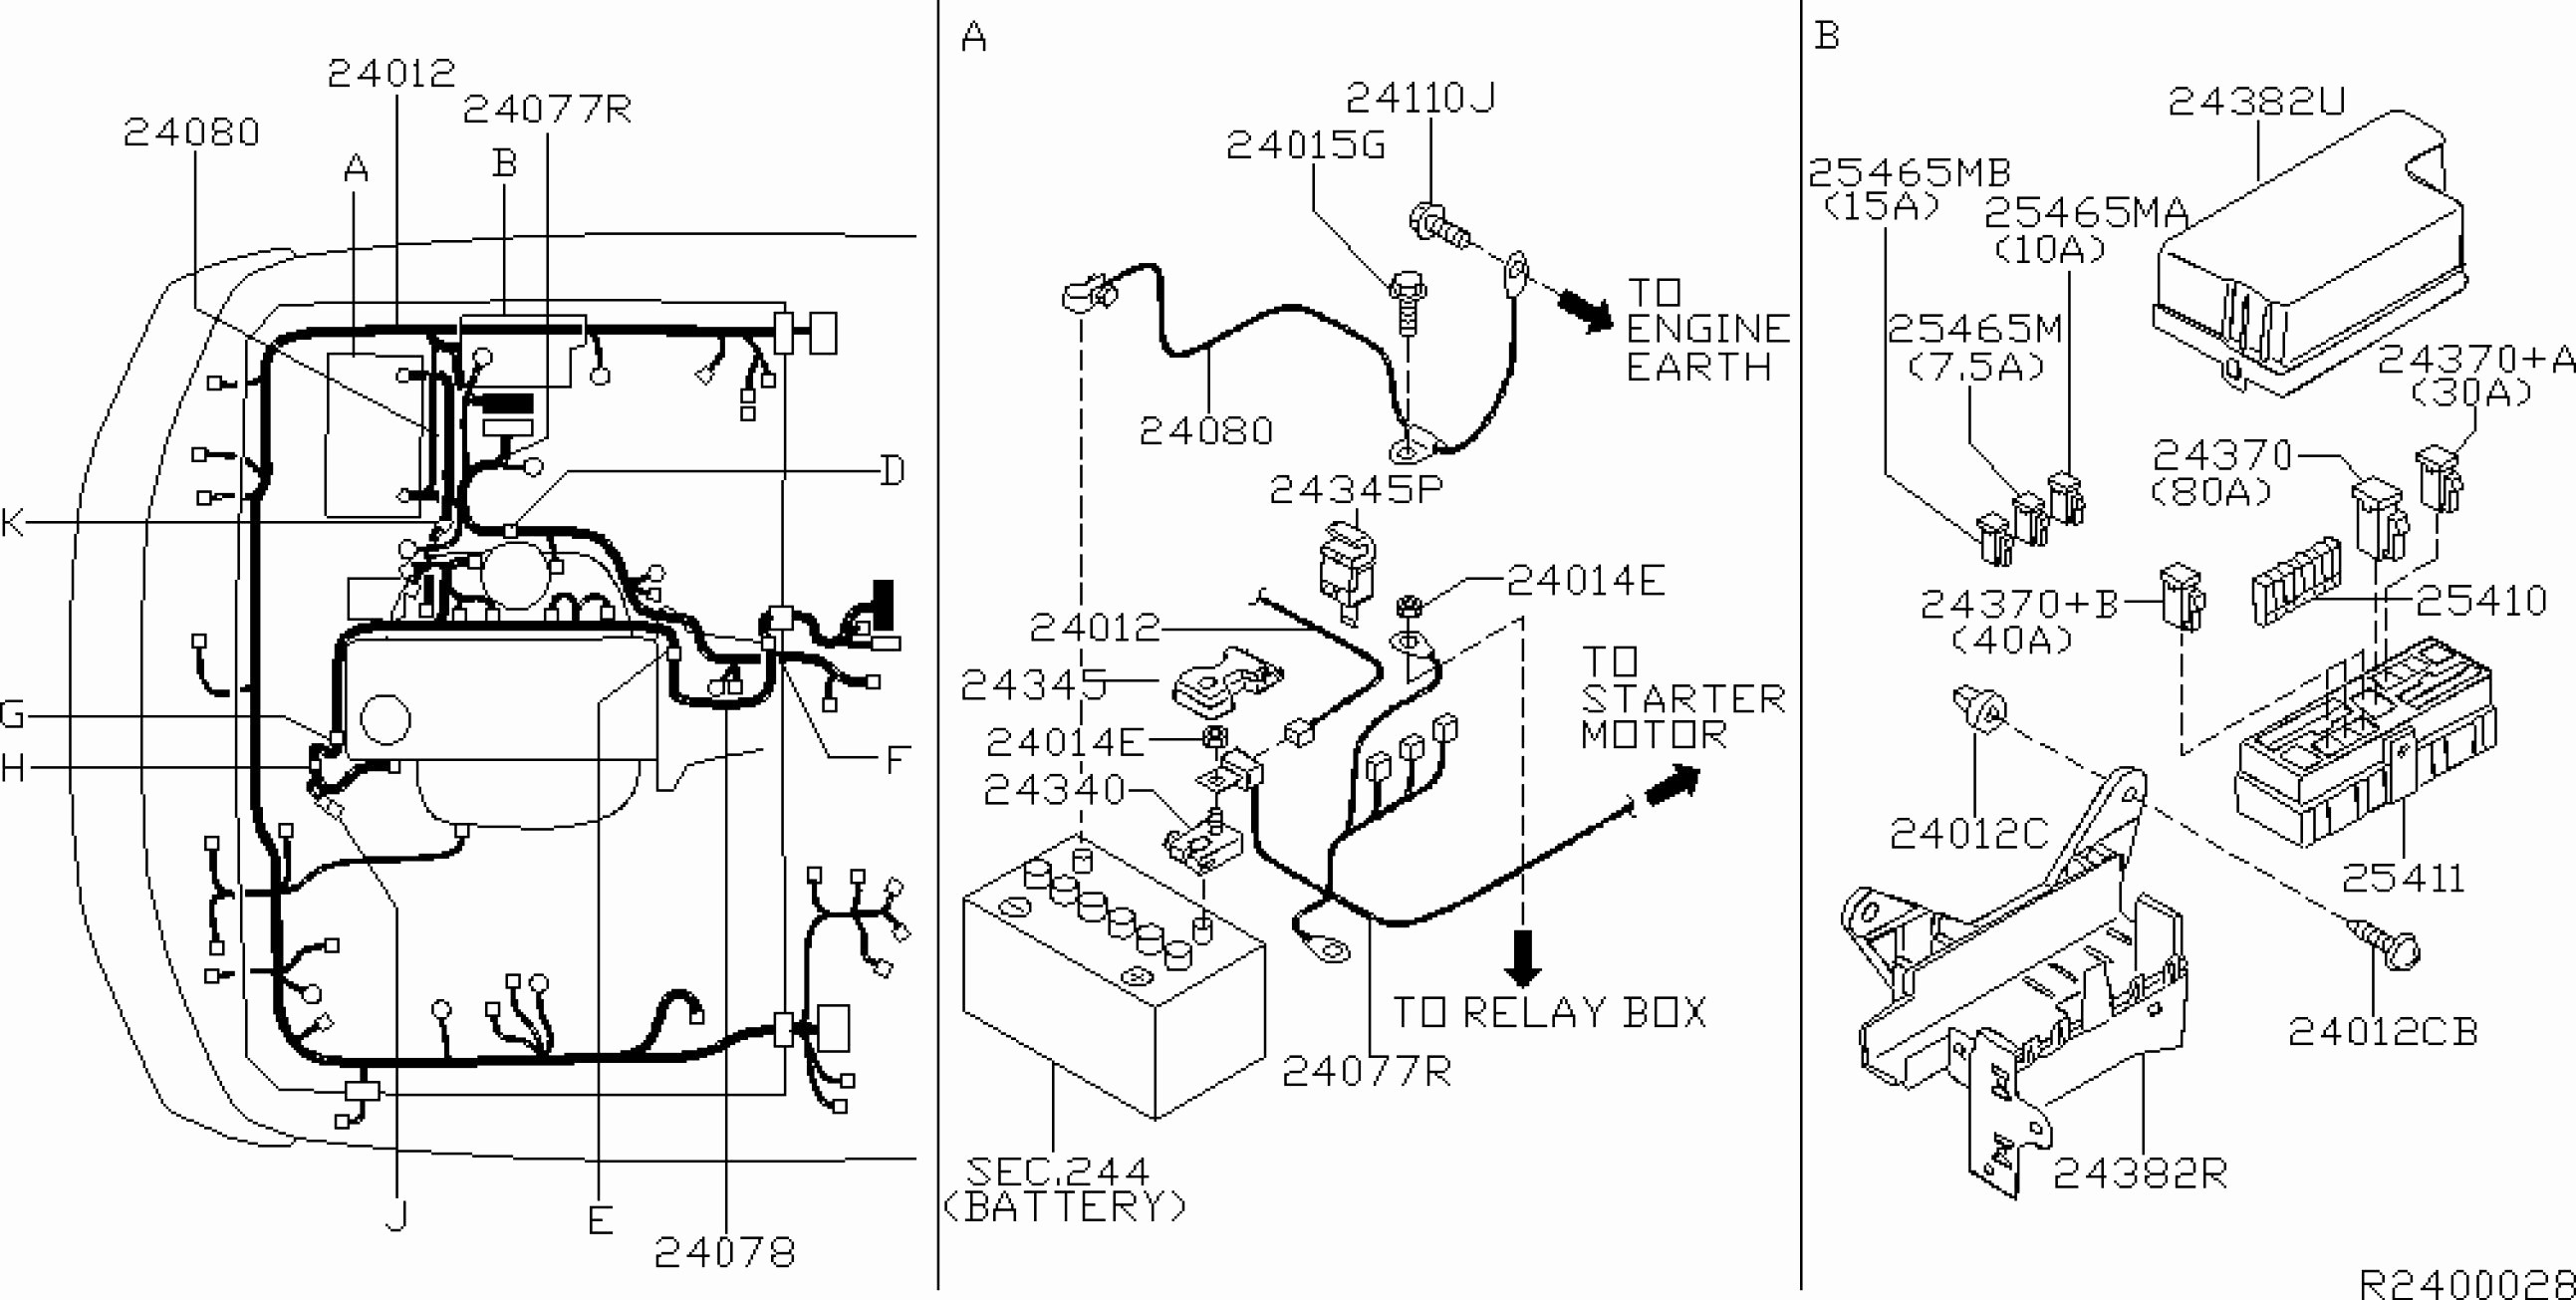 2006 Nissan Frontier Parts Diagram on 2003 gmc wiring diagram, 2003 dodge wiring diagram, 2003 caravan wiring diagram, 2003 mustang wiring diagram, 2003 jeep wiring diagram, 2003 range rover wiring diagram, 2003 ram wiring diagram,